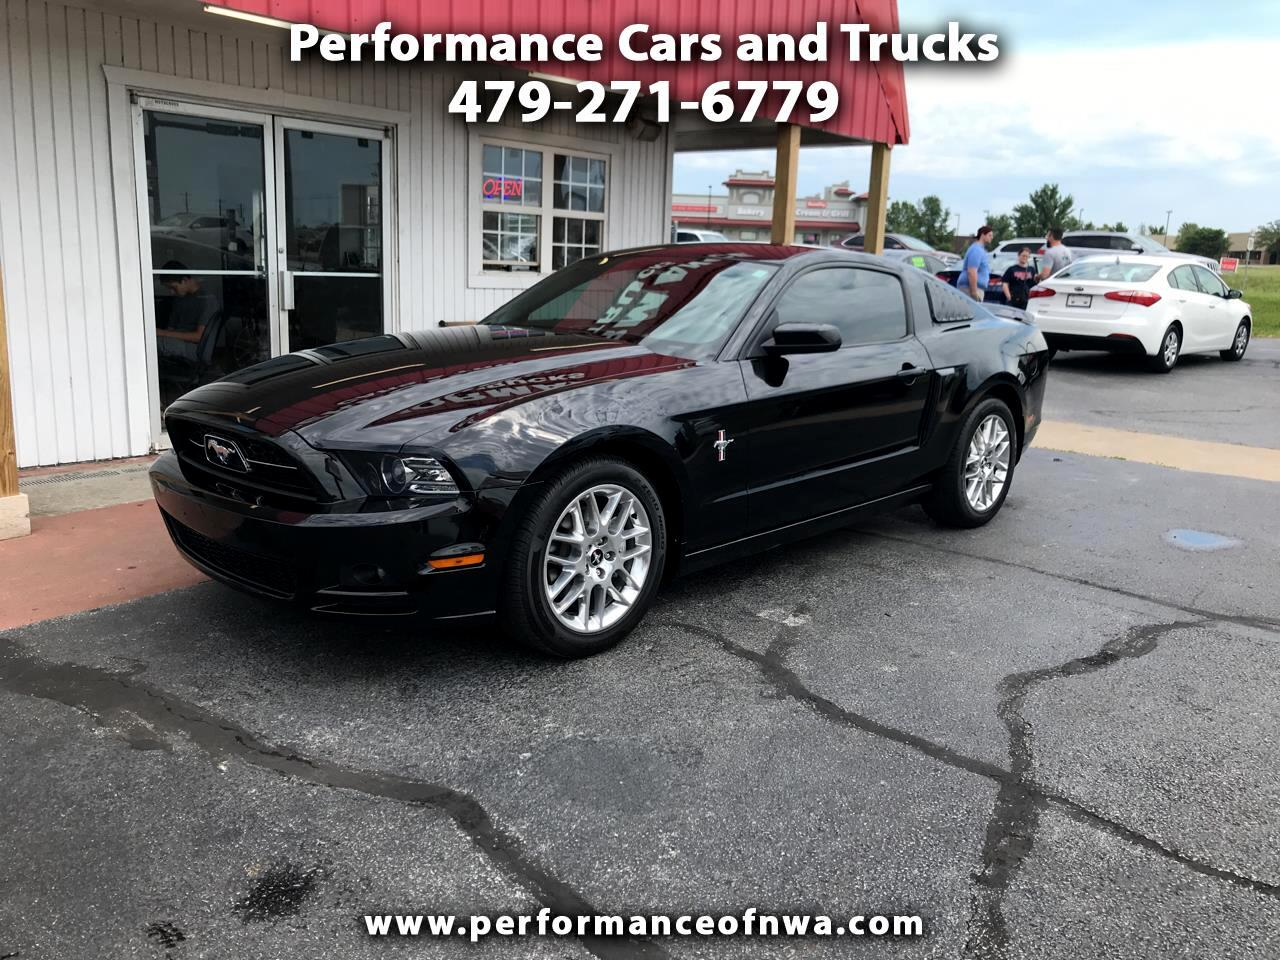 2014 Ford Mustang 2dr Cpe Premium